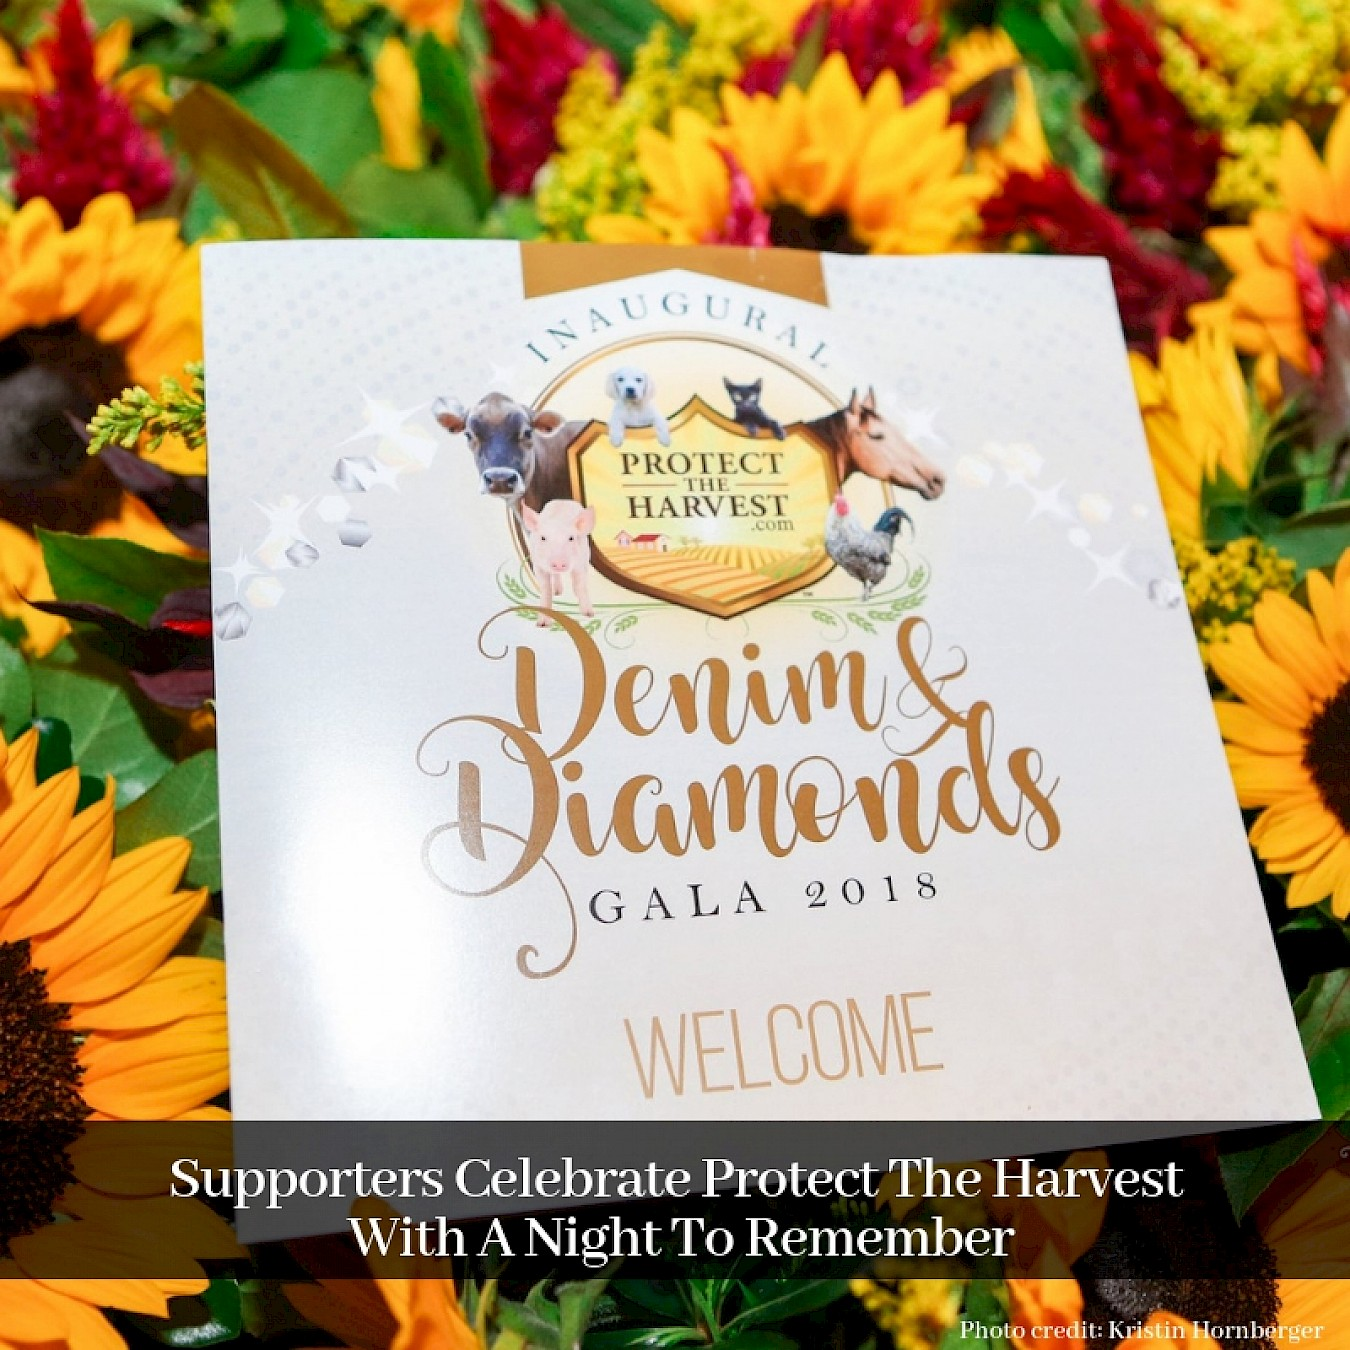 Supporters Celebrate Protect The Harvest with a Night to Remember